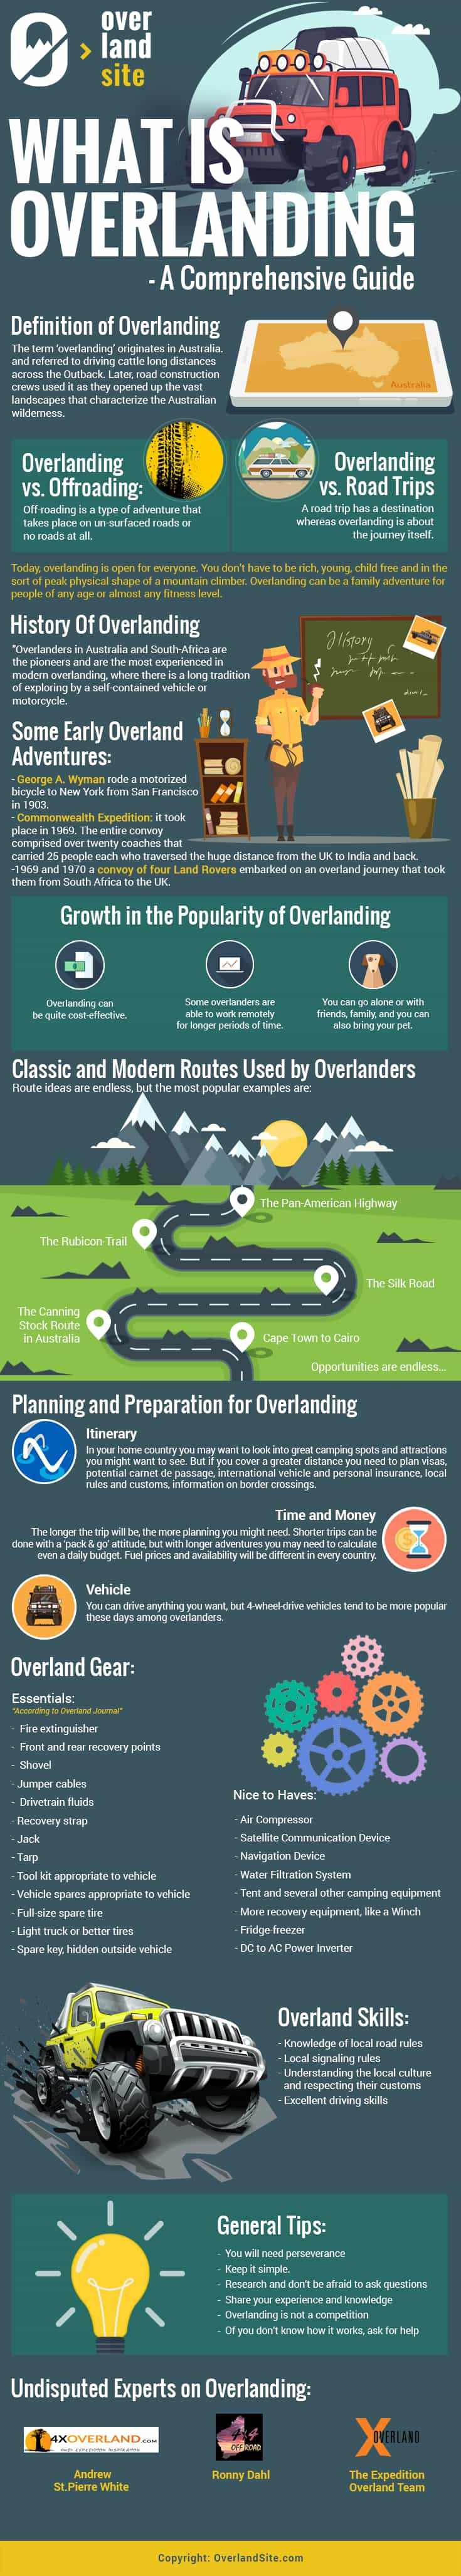 What Is Overlanding Infographic By Overlandsite